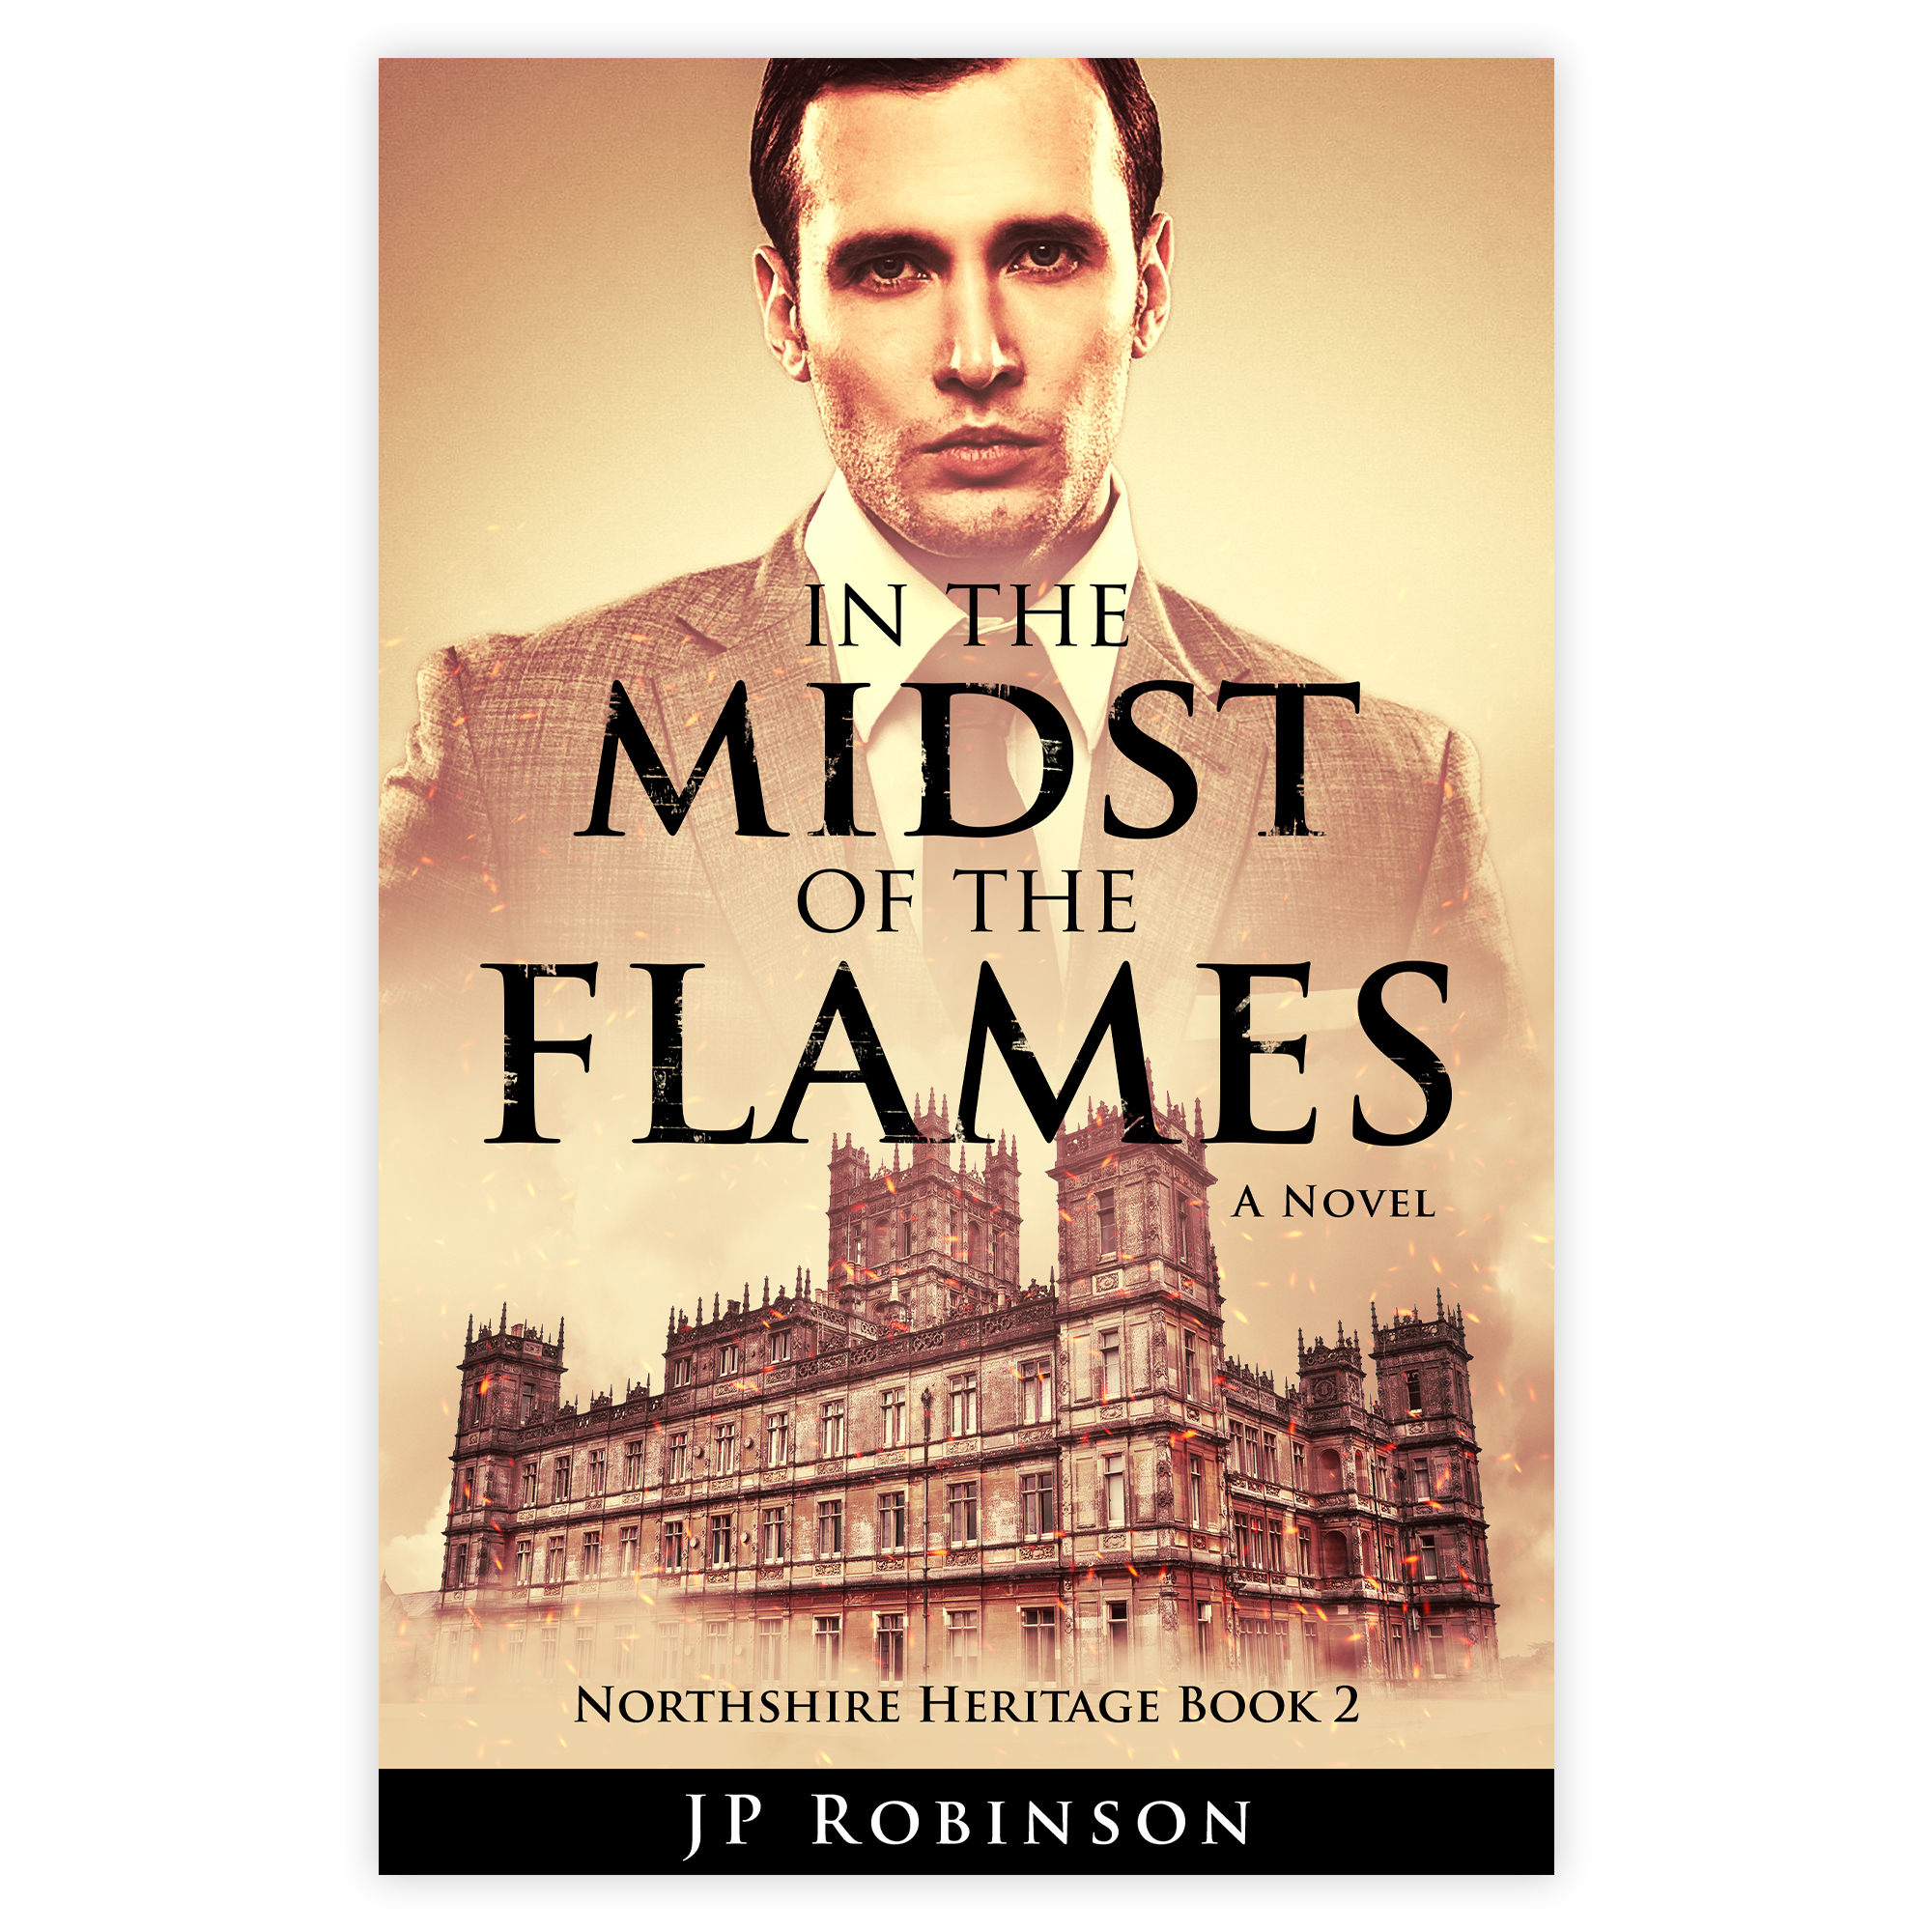 Cover for JP Robinson's book In the Midst of the Flames